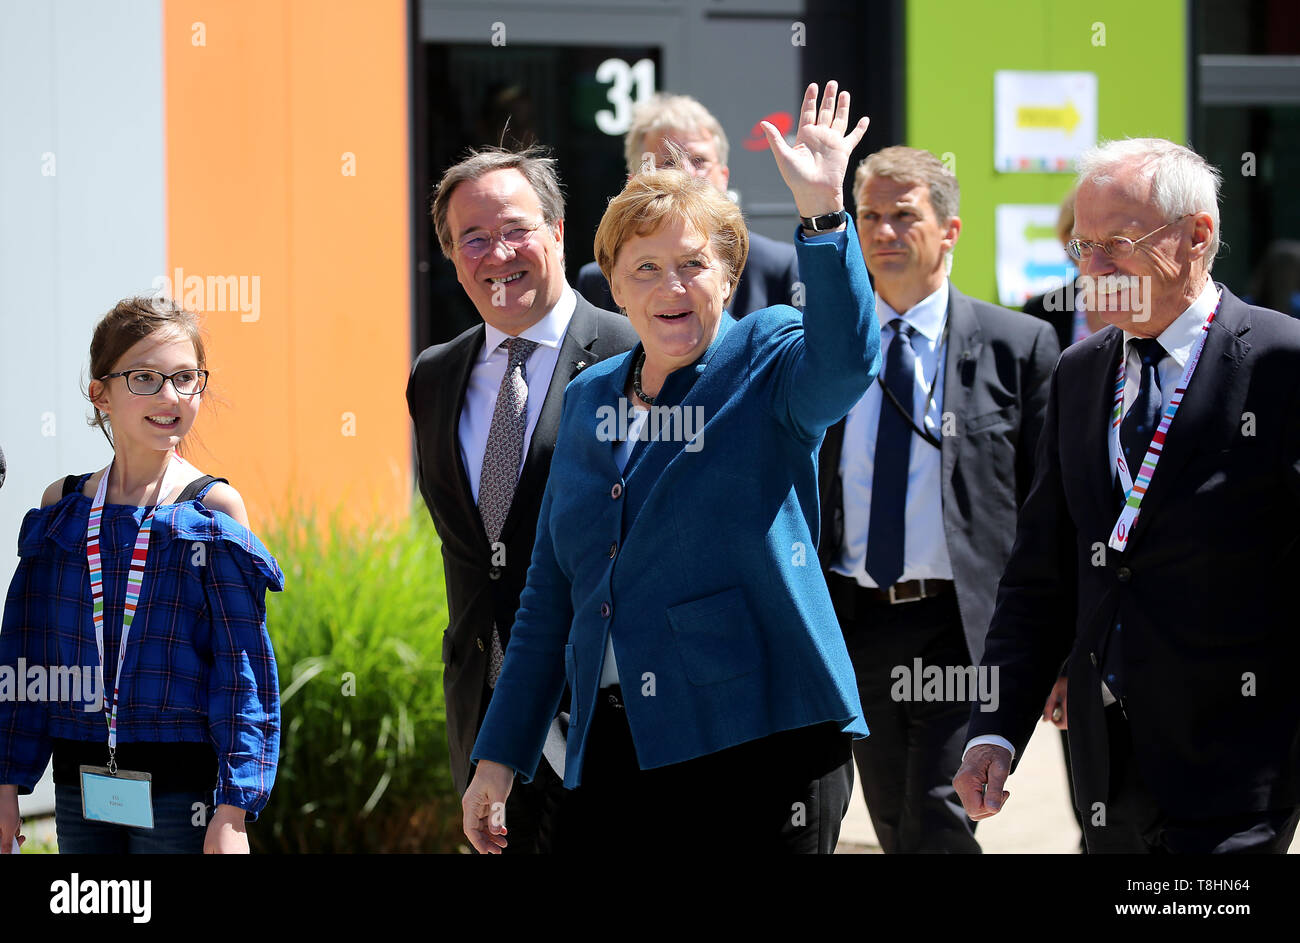 Wuppertal, Germany. 13th May, 2019. Federal Chancellor Angela Merkel (M, CDU), Armin Laschet, Prime Minister of North Rhine-Westphalia (2nd from left, CDU), and the founder of the Junior University Ernst-Andreas Ziegler (r) come to the Junior University with pupil Ellis (l). The Wuppertal Junior University is a nationwide unique extracurricular educational and research institution for 4 to 20 year olds. Credit: Oliver Berg/dpa/Alamy Live News - Stock Image